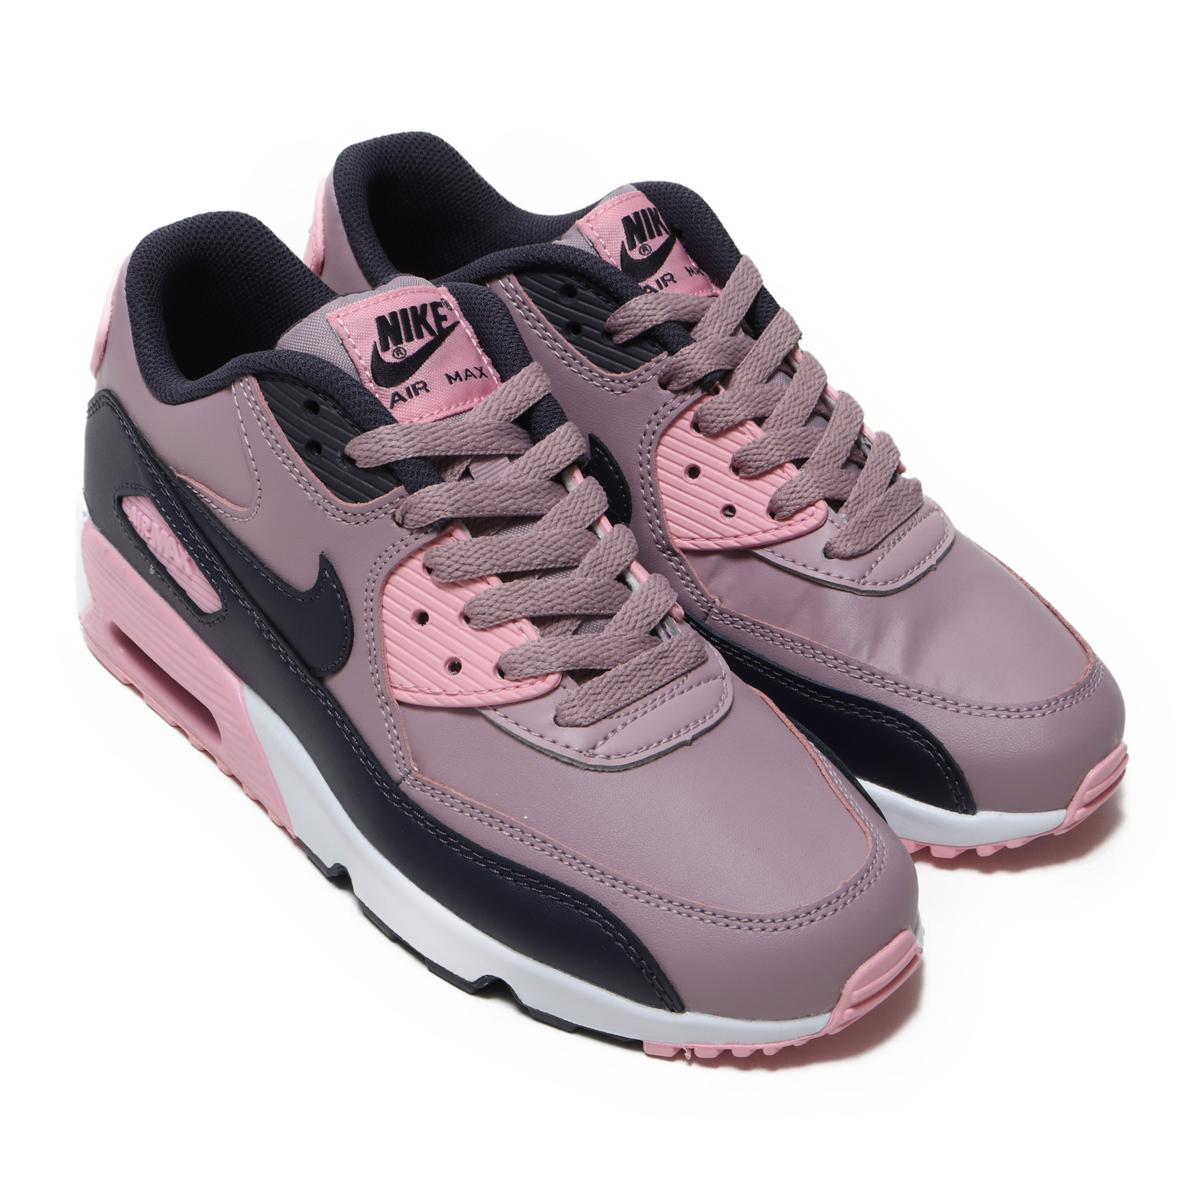 pretty nice b2c76 71e09 NIKE AIR MAX 90 LTR (GS) (Kie Ney AMAX 90 LTR GS) ELEMENTAL  ROSE GRIDIRON-PINK-WHITE 18FA-I